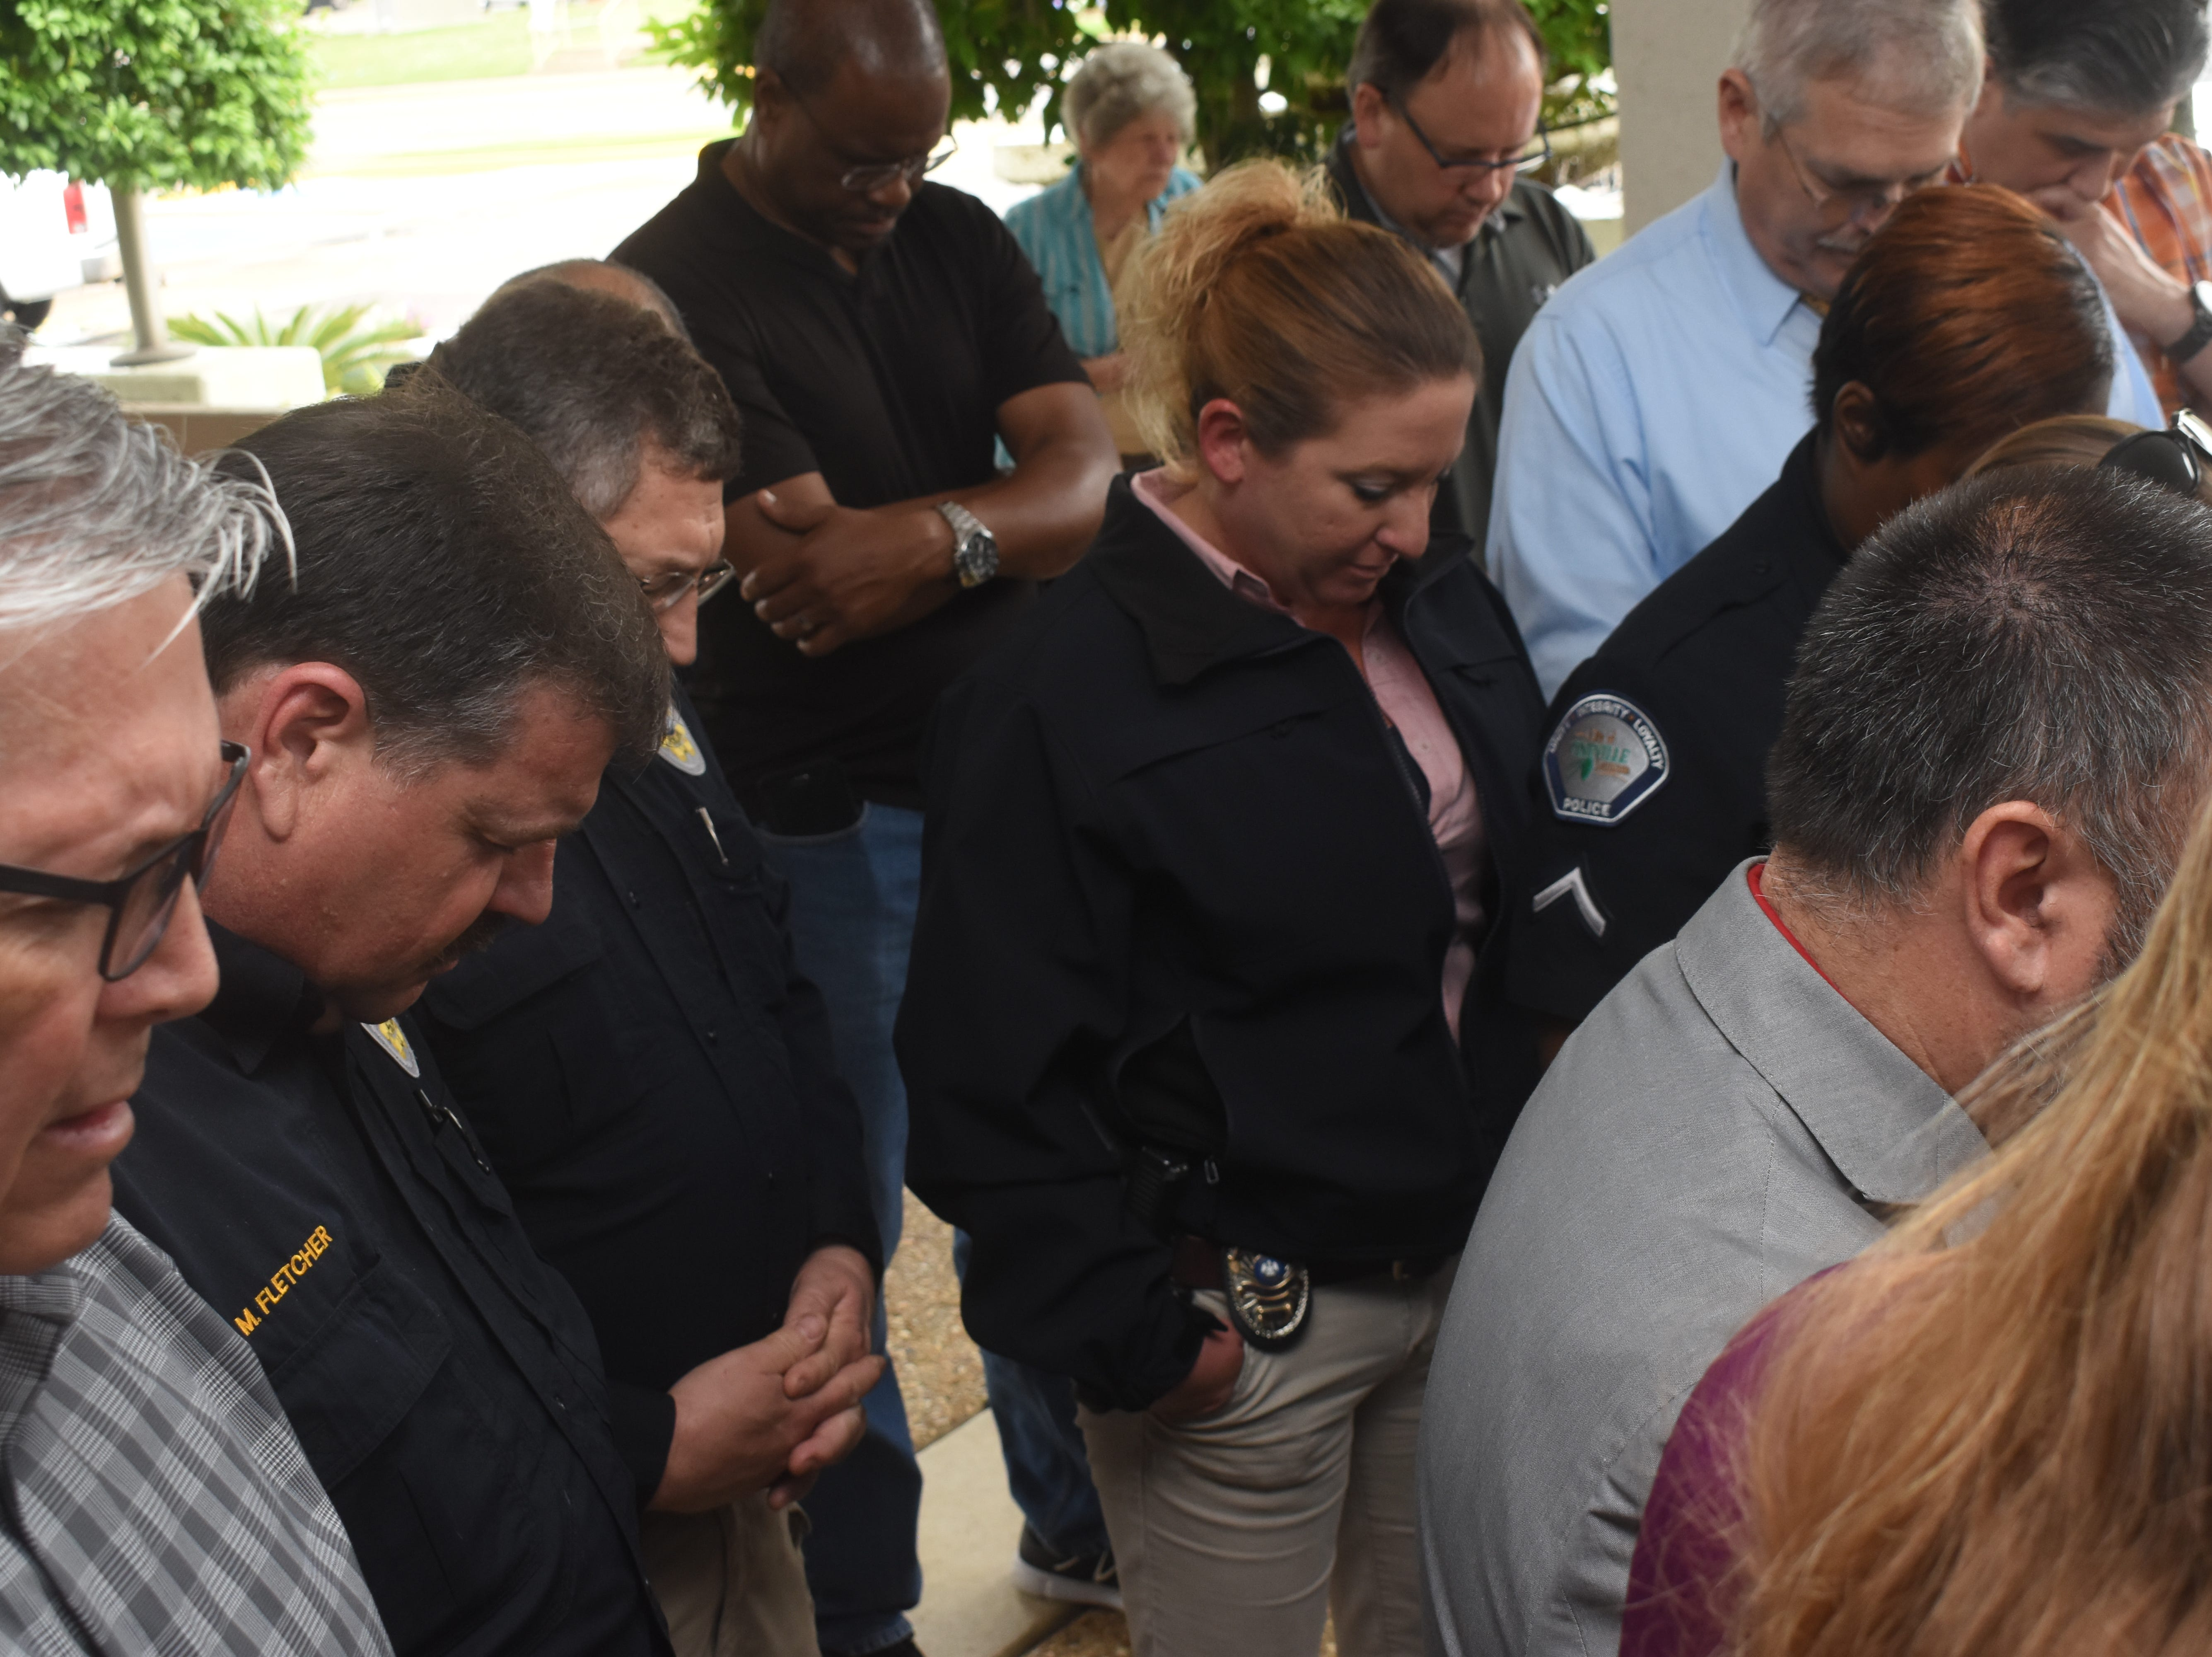 """Pineville citizens, city officials, law enforcement and emergency personnel gather at Pineville City Hall for the National Day of Prayer which is held on the first Thursday in May. People of all faiths are invited to prayer for the United States, elected officials, law enforcement and emergency personnel and the military. Pineville has observed the National Day of Prayer for over 20 years. Anyone attending the gathering could lead a prayer. The event ended with the singing of """"God Bless America."""""""